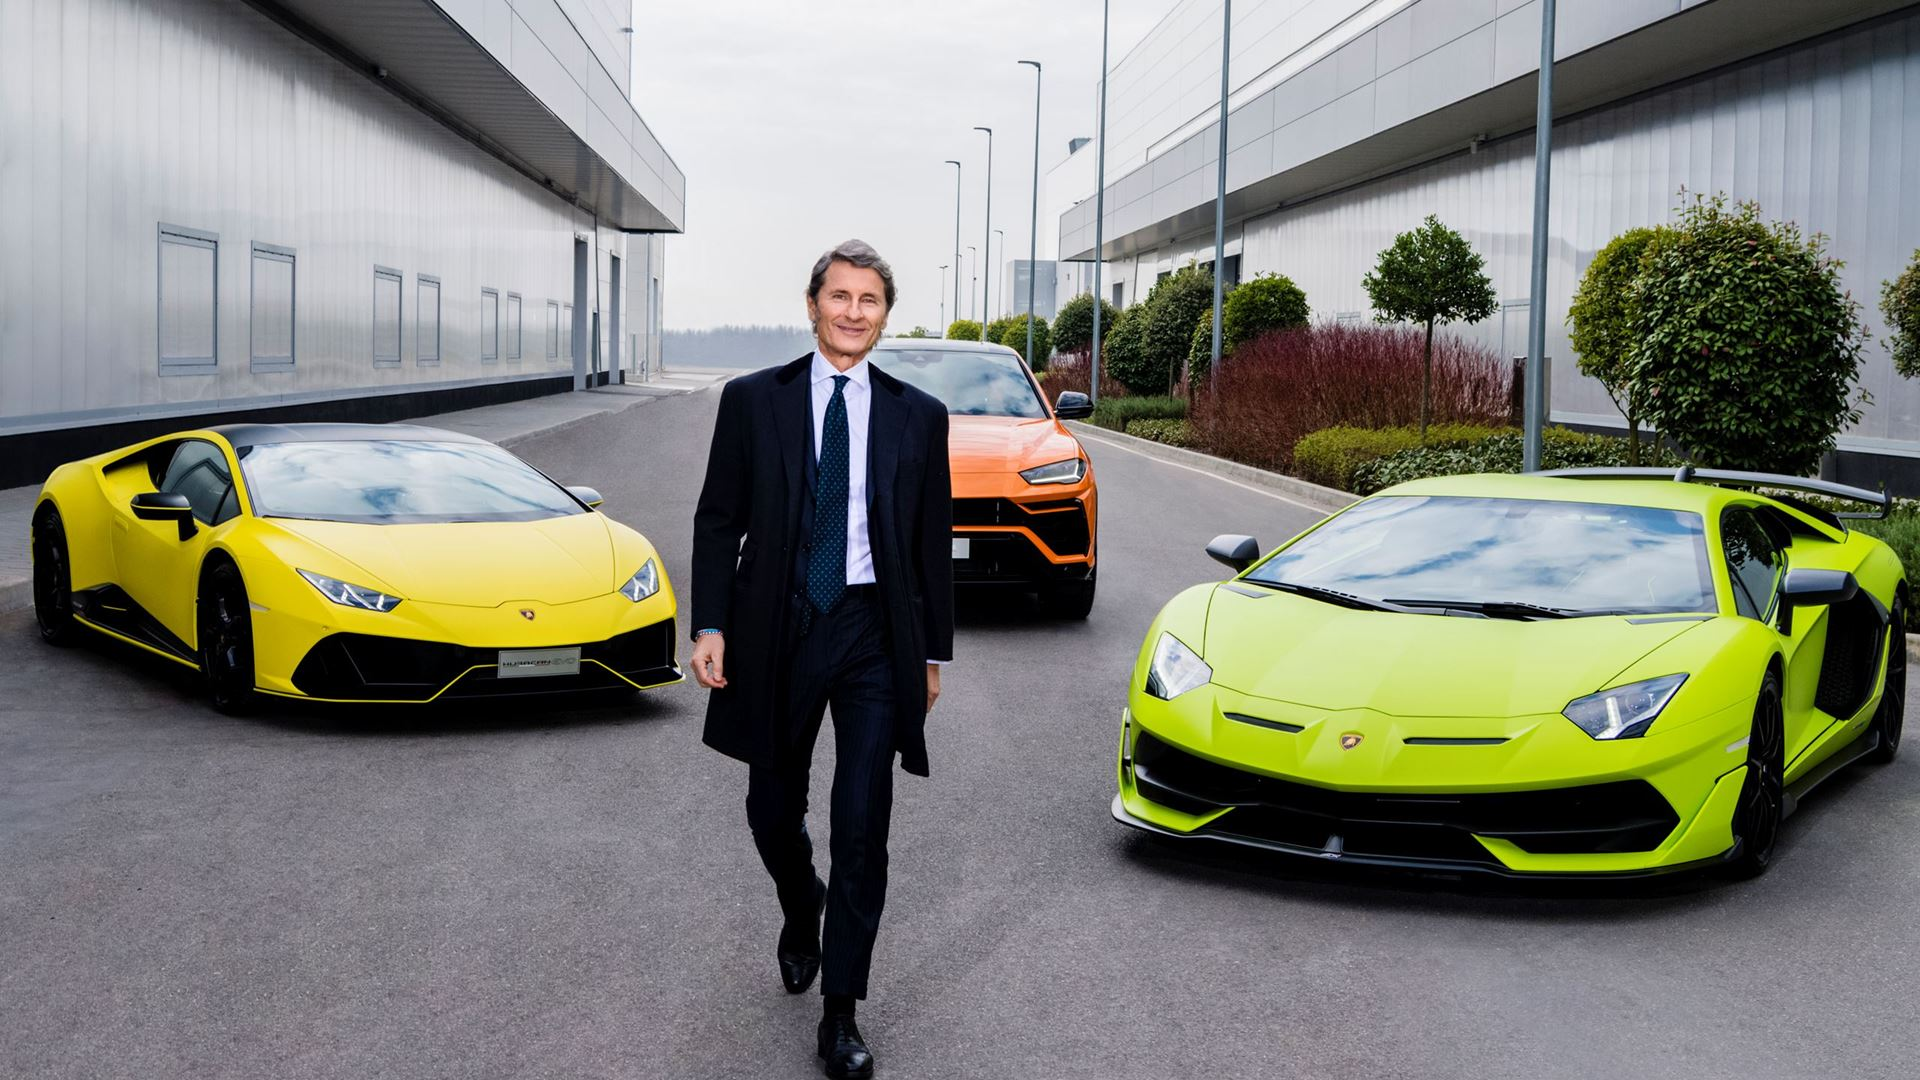 Automobili Lamborghini: Strong profitability and second-best year ever for turnover and sales - Image 1